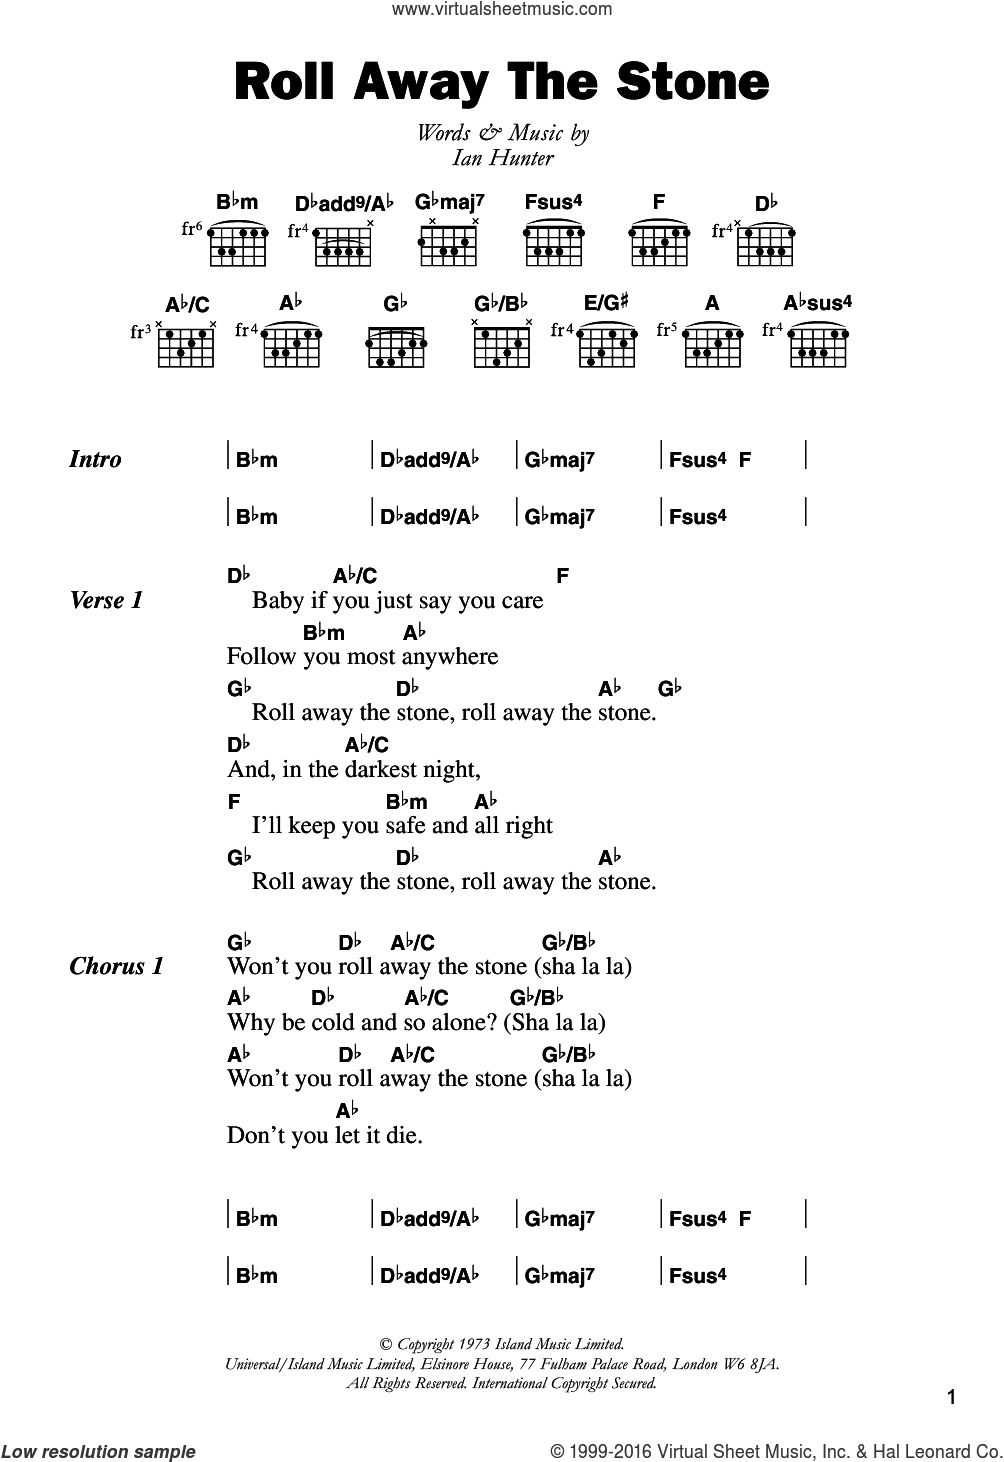 Roll Away The Stone sheet music for guitar (chords) by Mott The Hoople and Ian Hunter, intermediate skill level